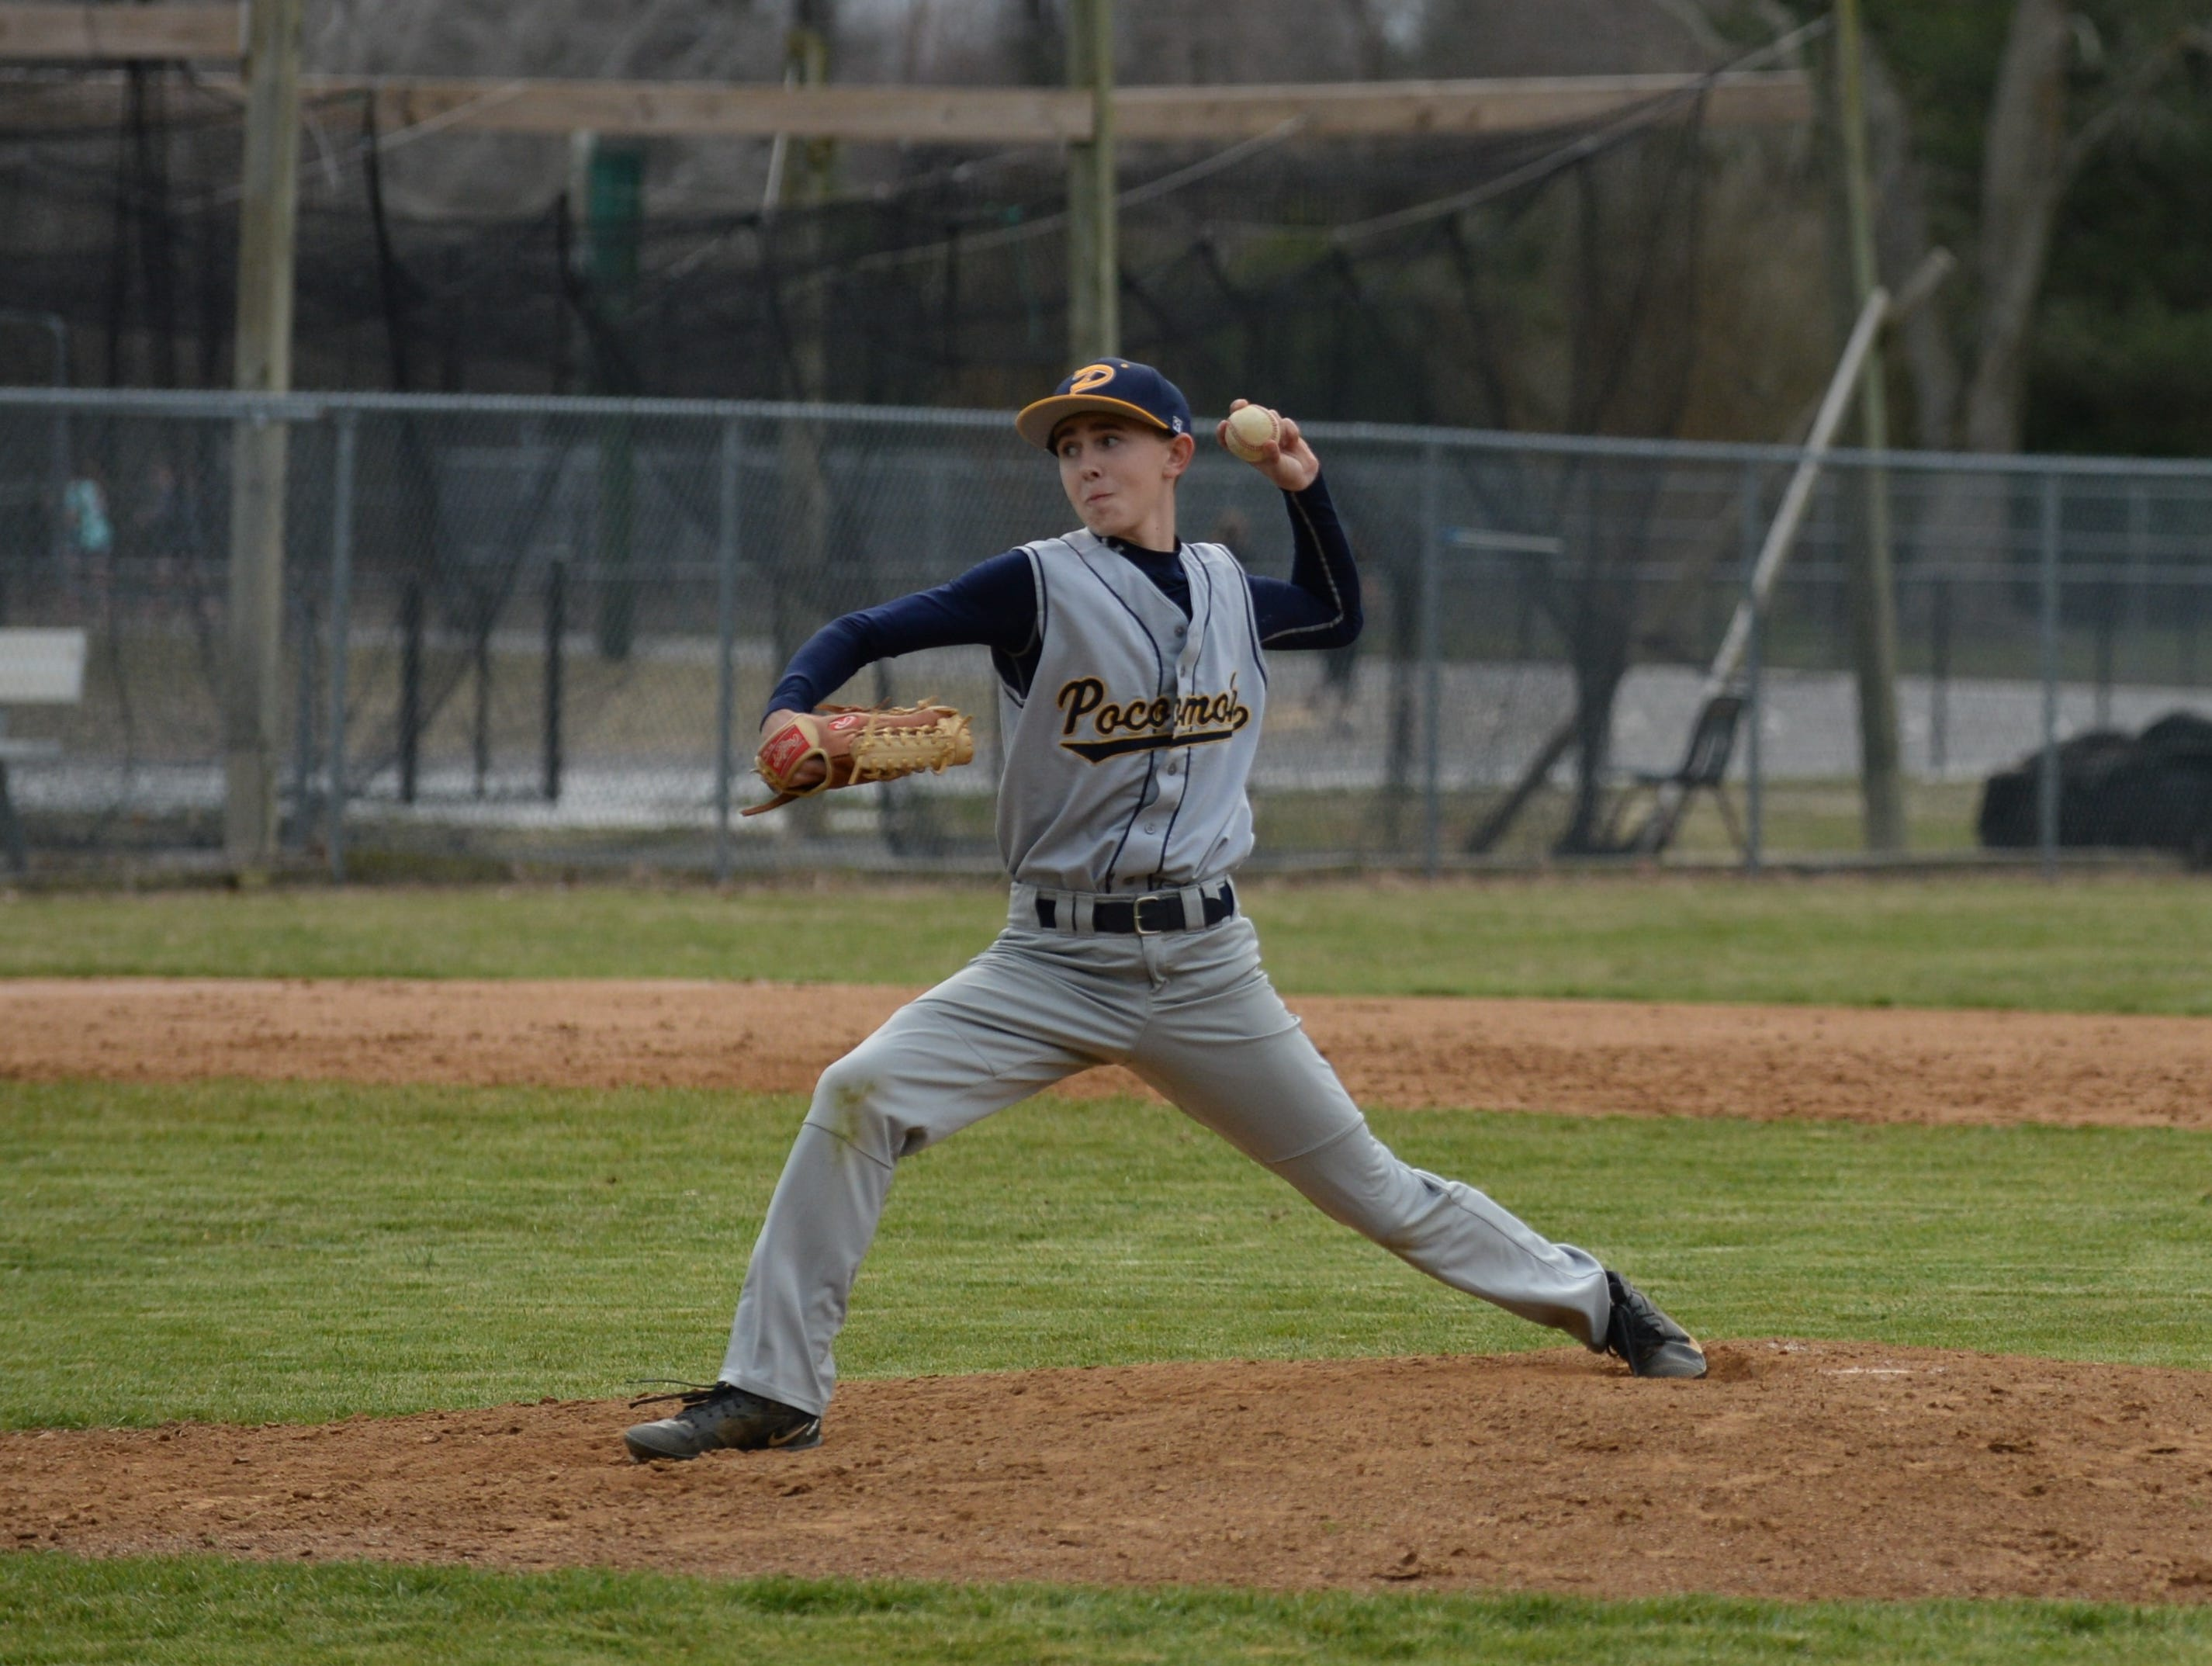 A Pocomoke pitcher throws against Mardela on Monday, March 25, 2019.